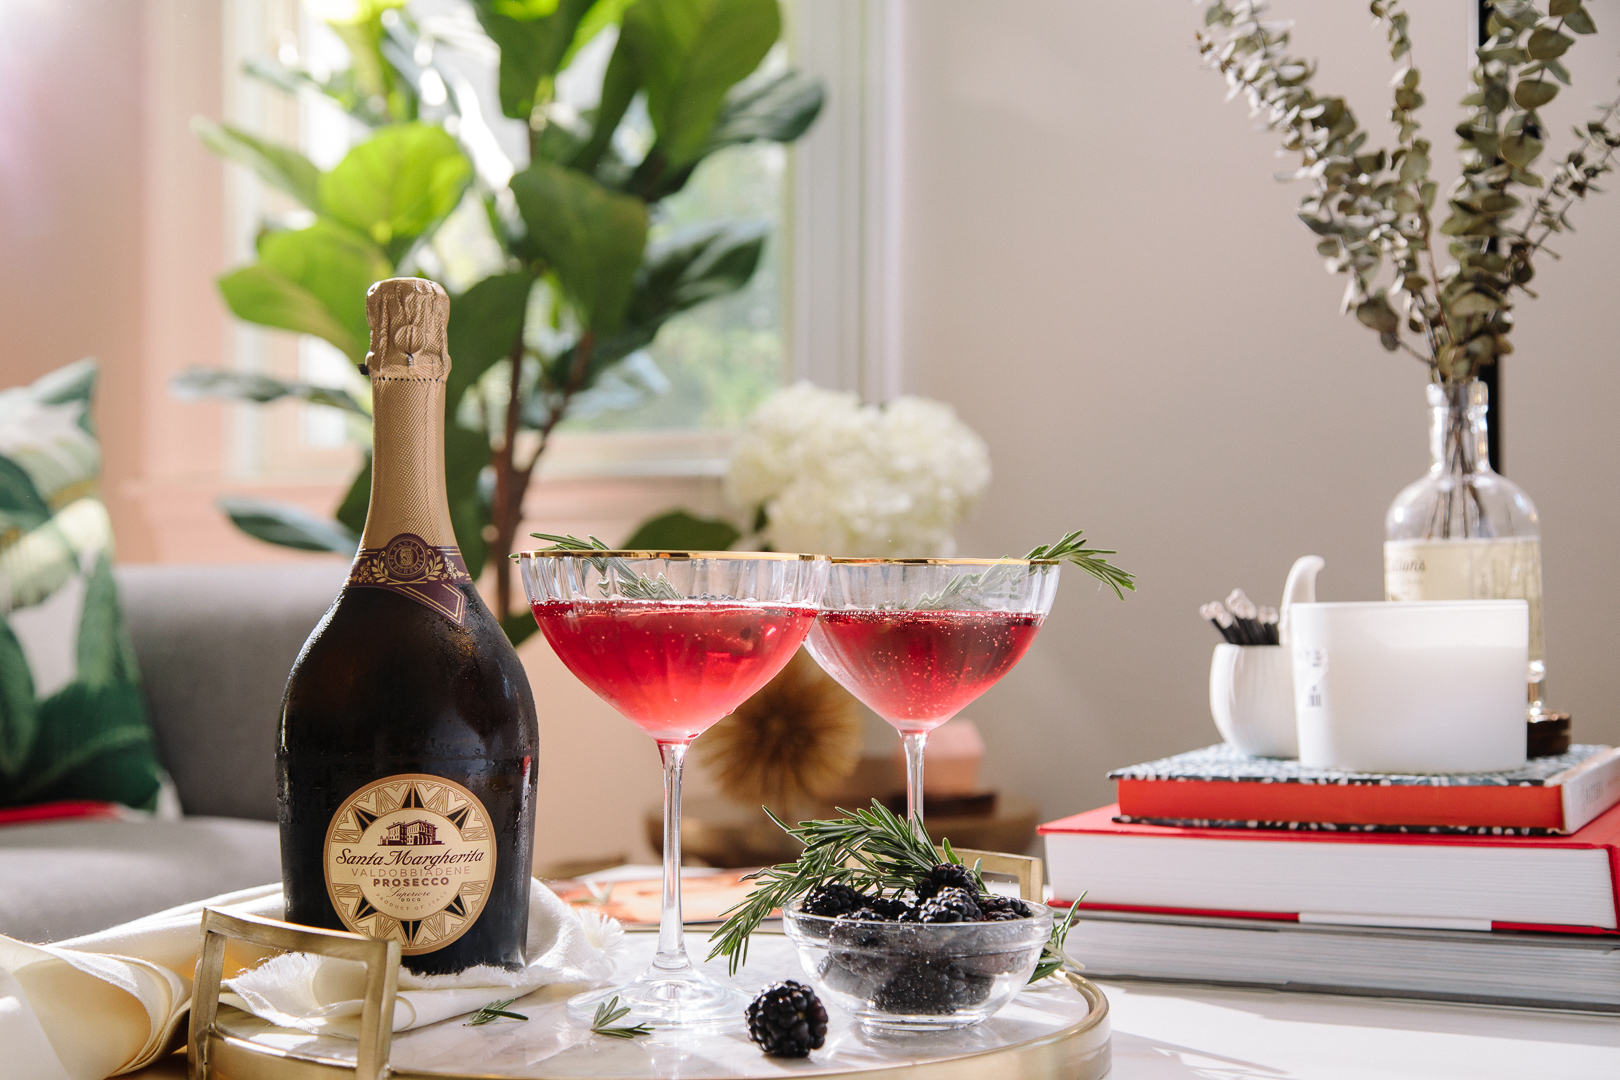 Making a fun and festive champagne cocktail